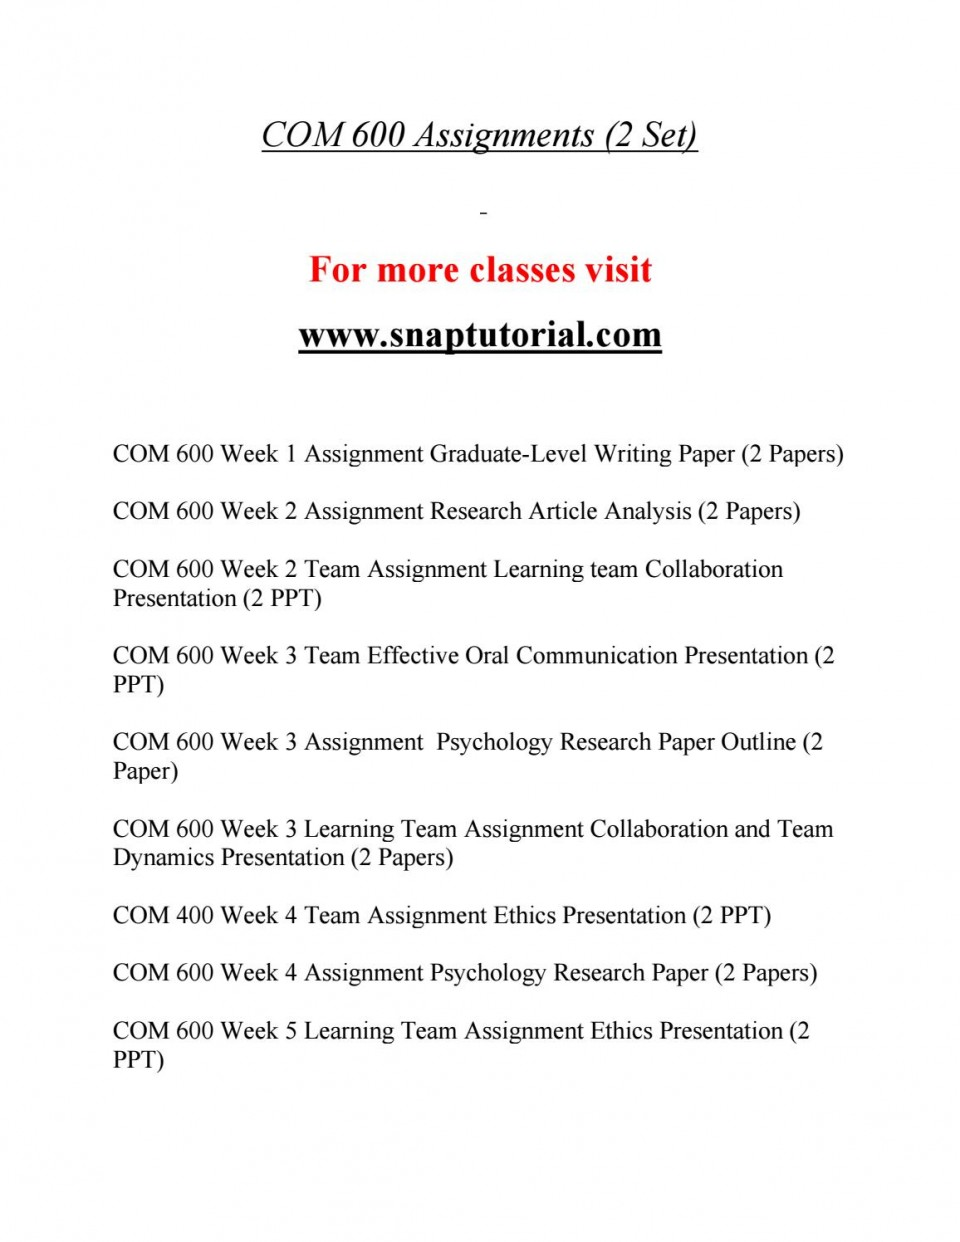 008 Psychology Research Paper Outline Com Page 1 Striking 600 Com/600 960